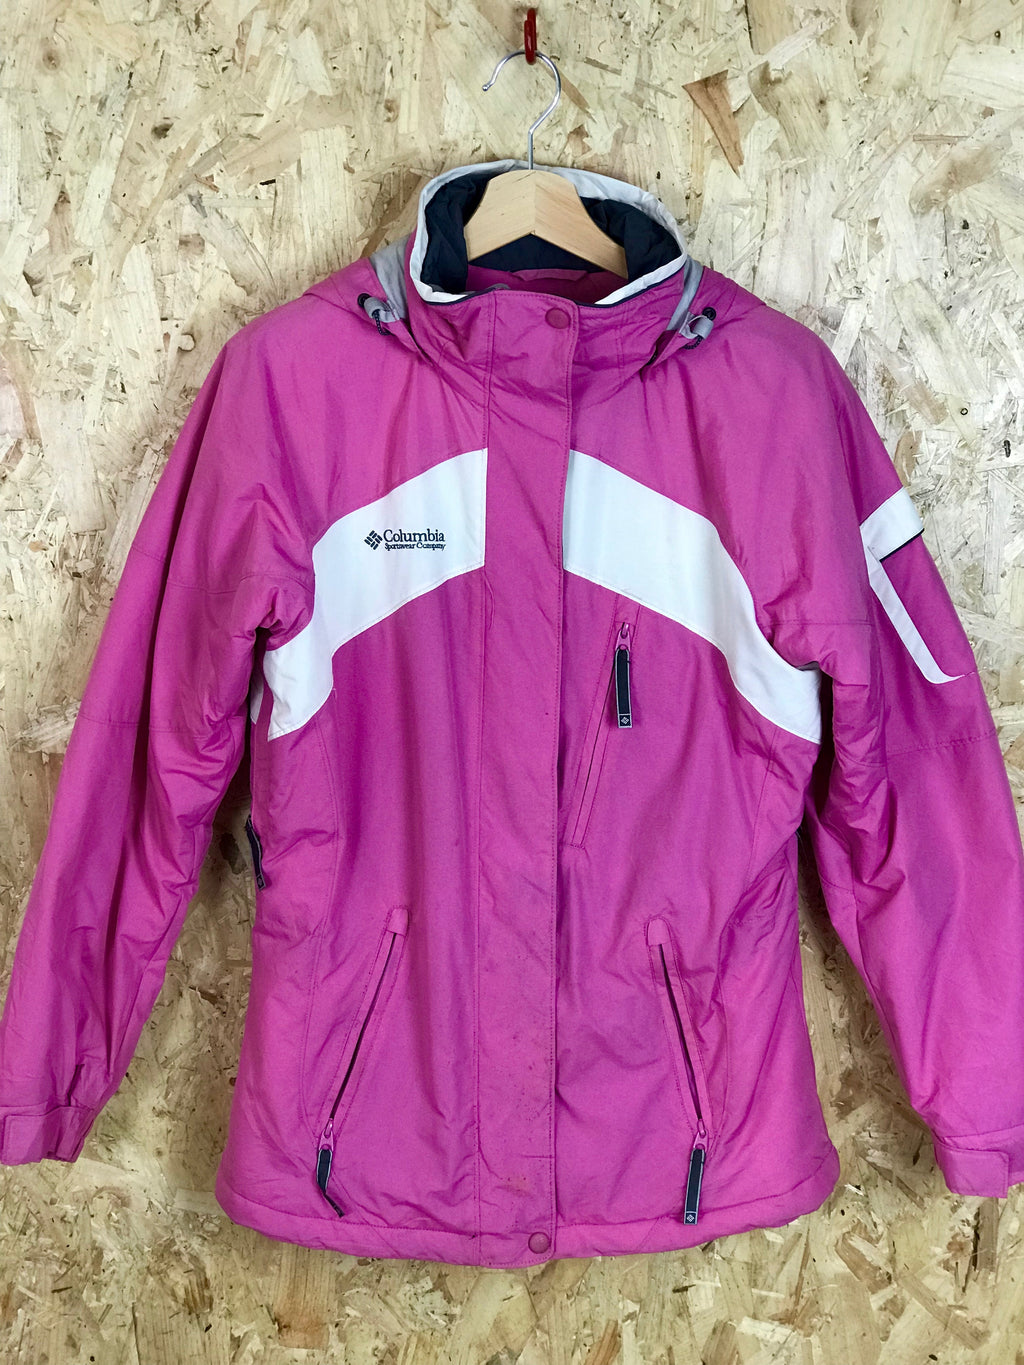 Pink/White Columbia Ski Jacket